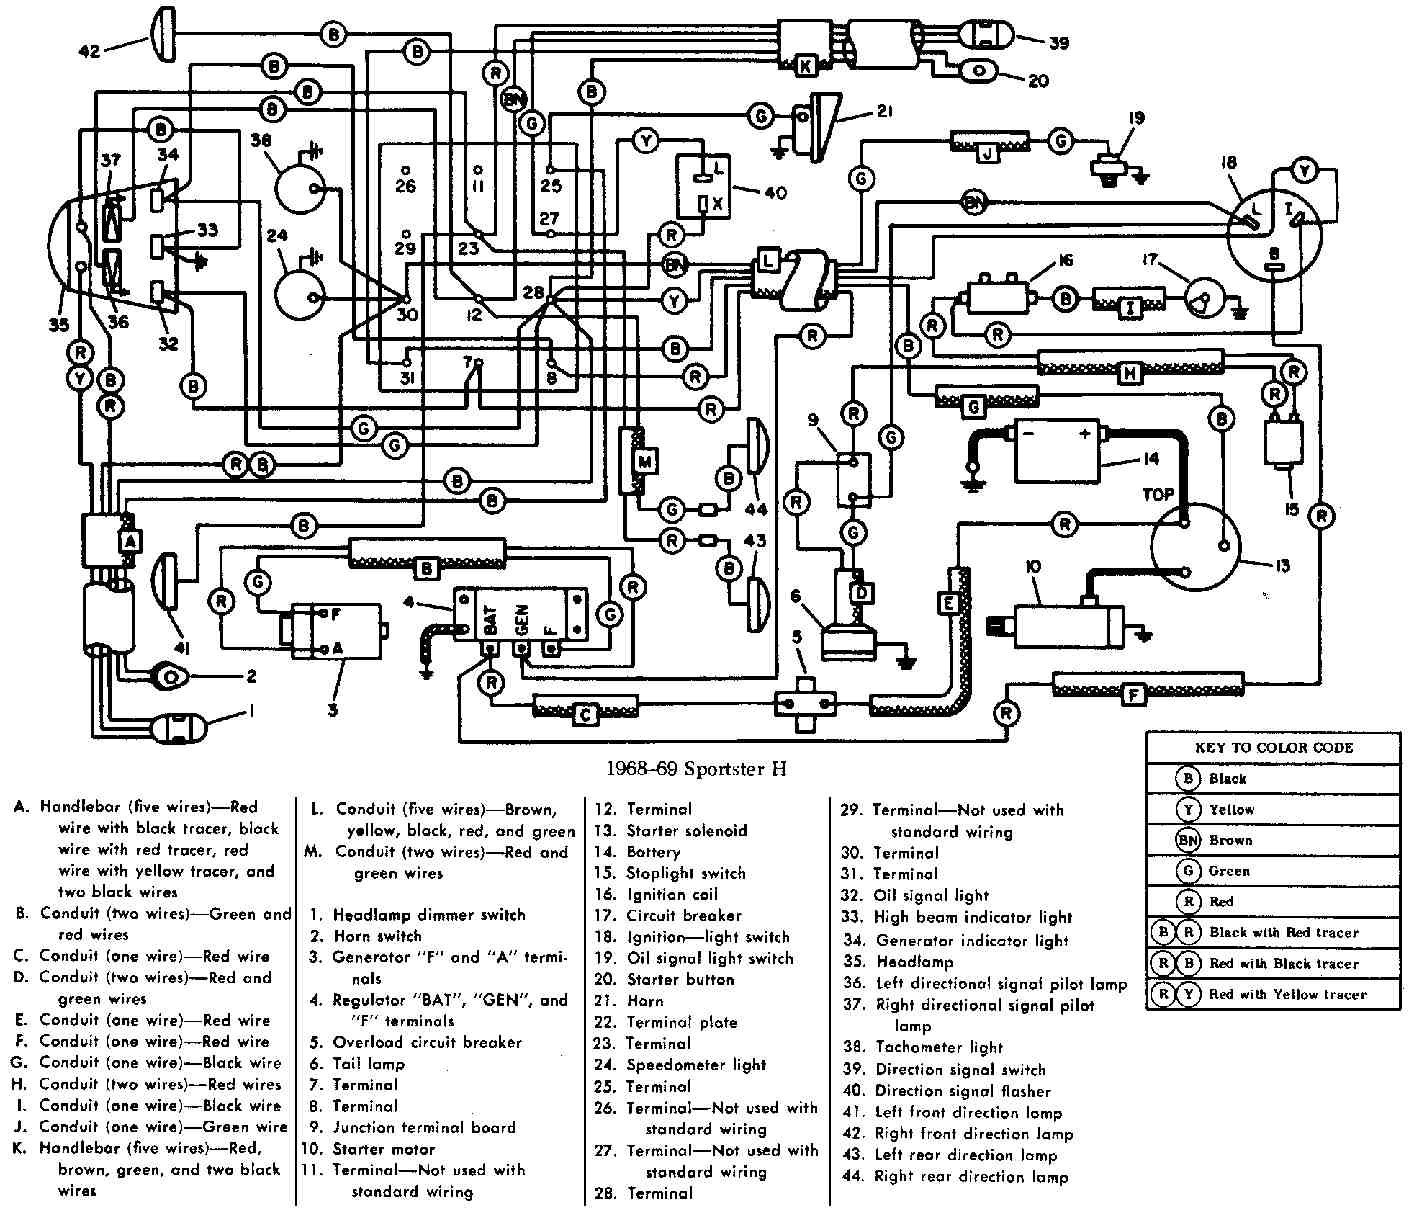 diagram motorcycle harley davidson tachometer wiring diagram mini rh abetter pw